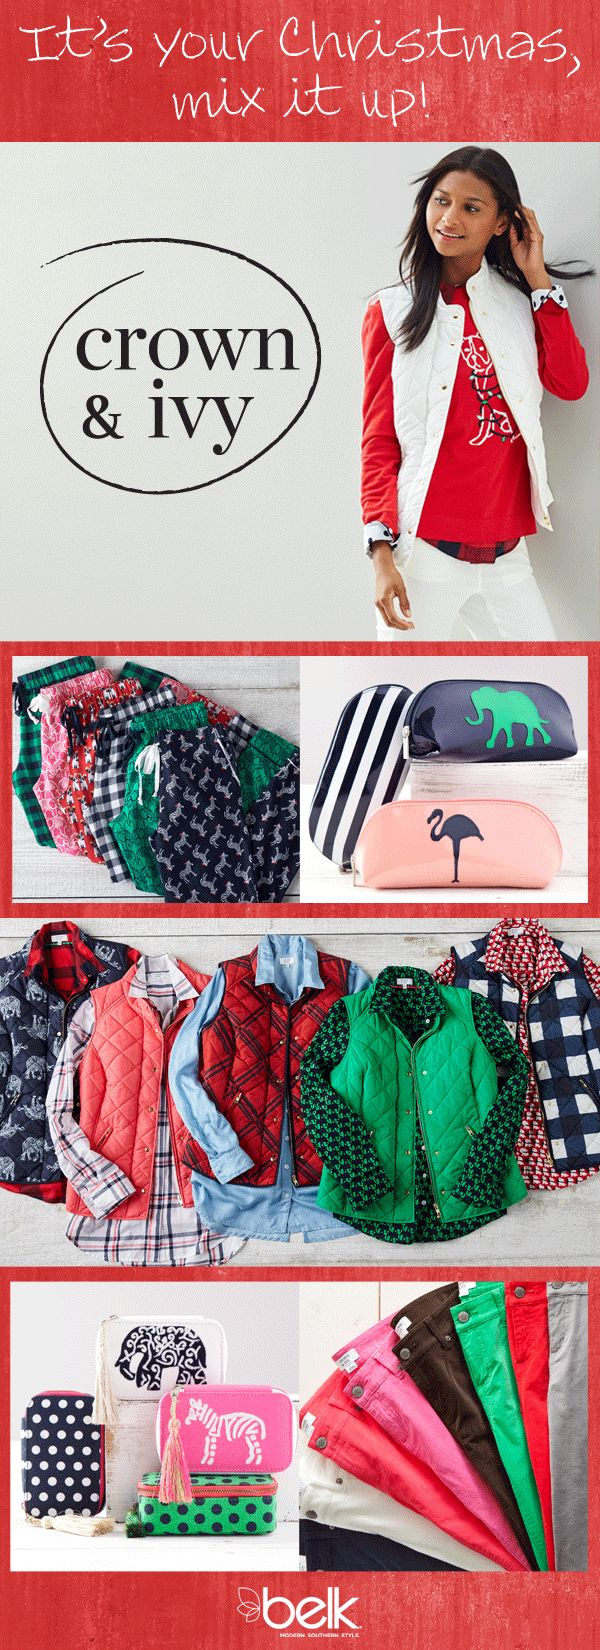 The Crown & Ivy holiday collection is here with festive sweaters, puffer vests, layers to love, new prints and patterns and so much more! Mix and match your favorite cardigans with colored denim and pretty peasants and decorative tees for looks that shine all season long. Finish the look with a new scarf in a fresh print. Why wait for a wish list when you can get more now? Shop Crown & Ivy in-store or at belk.com.